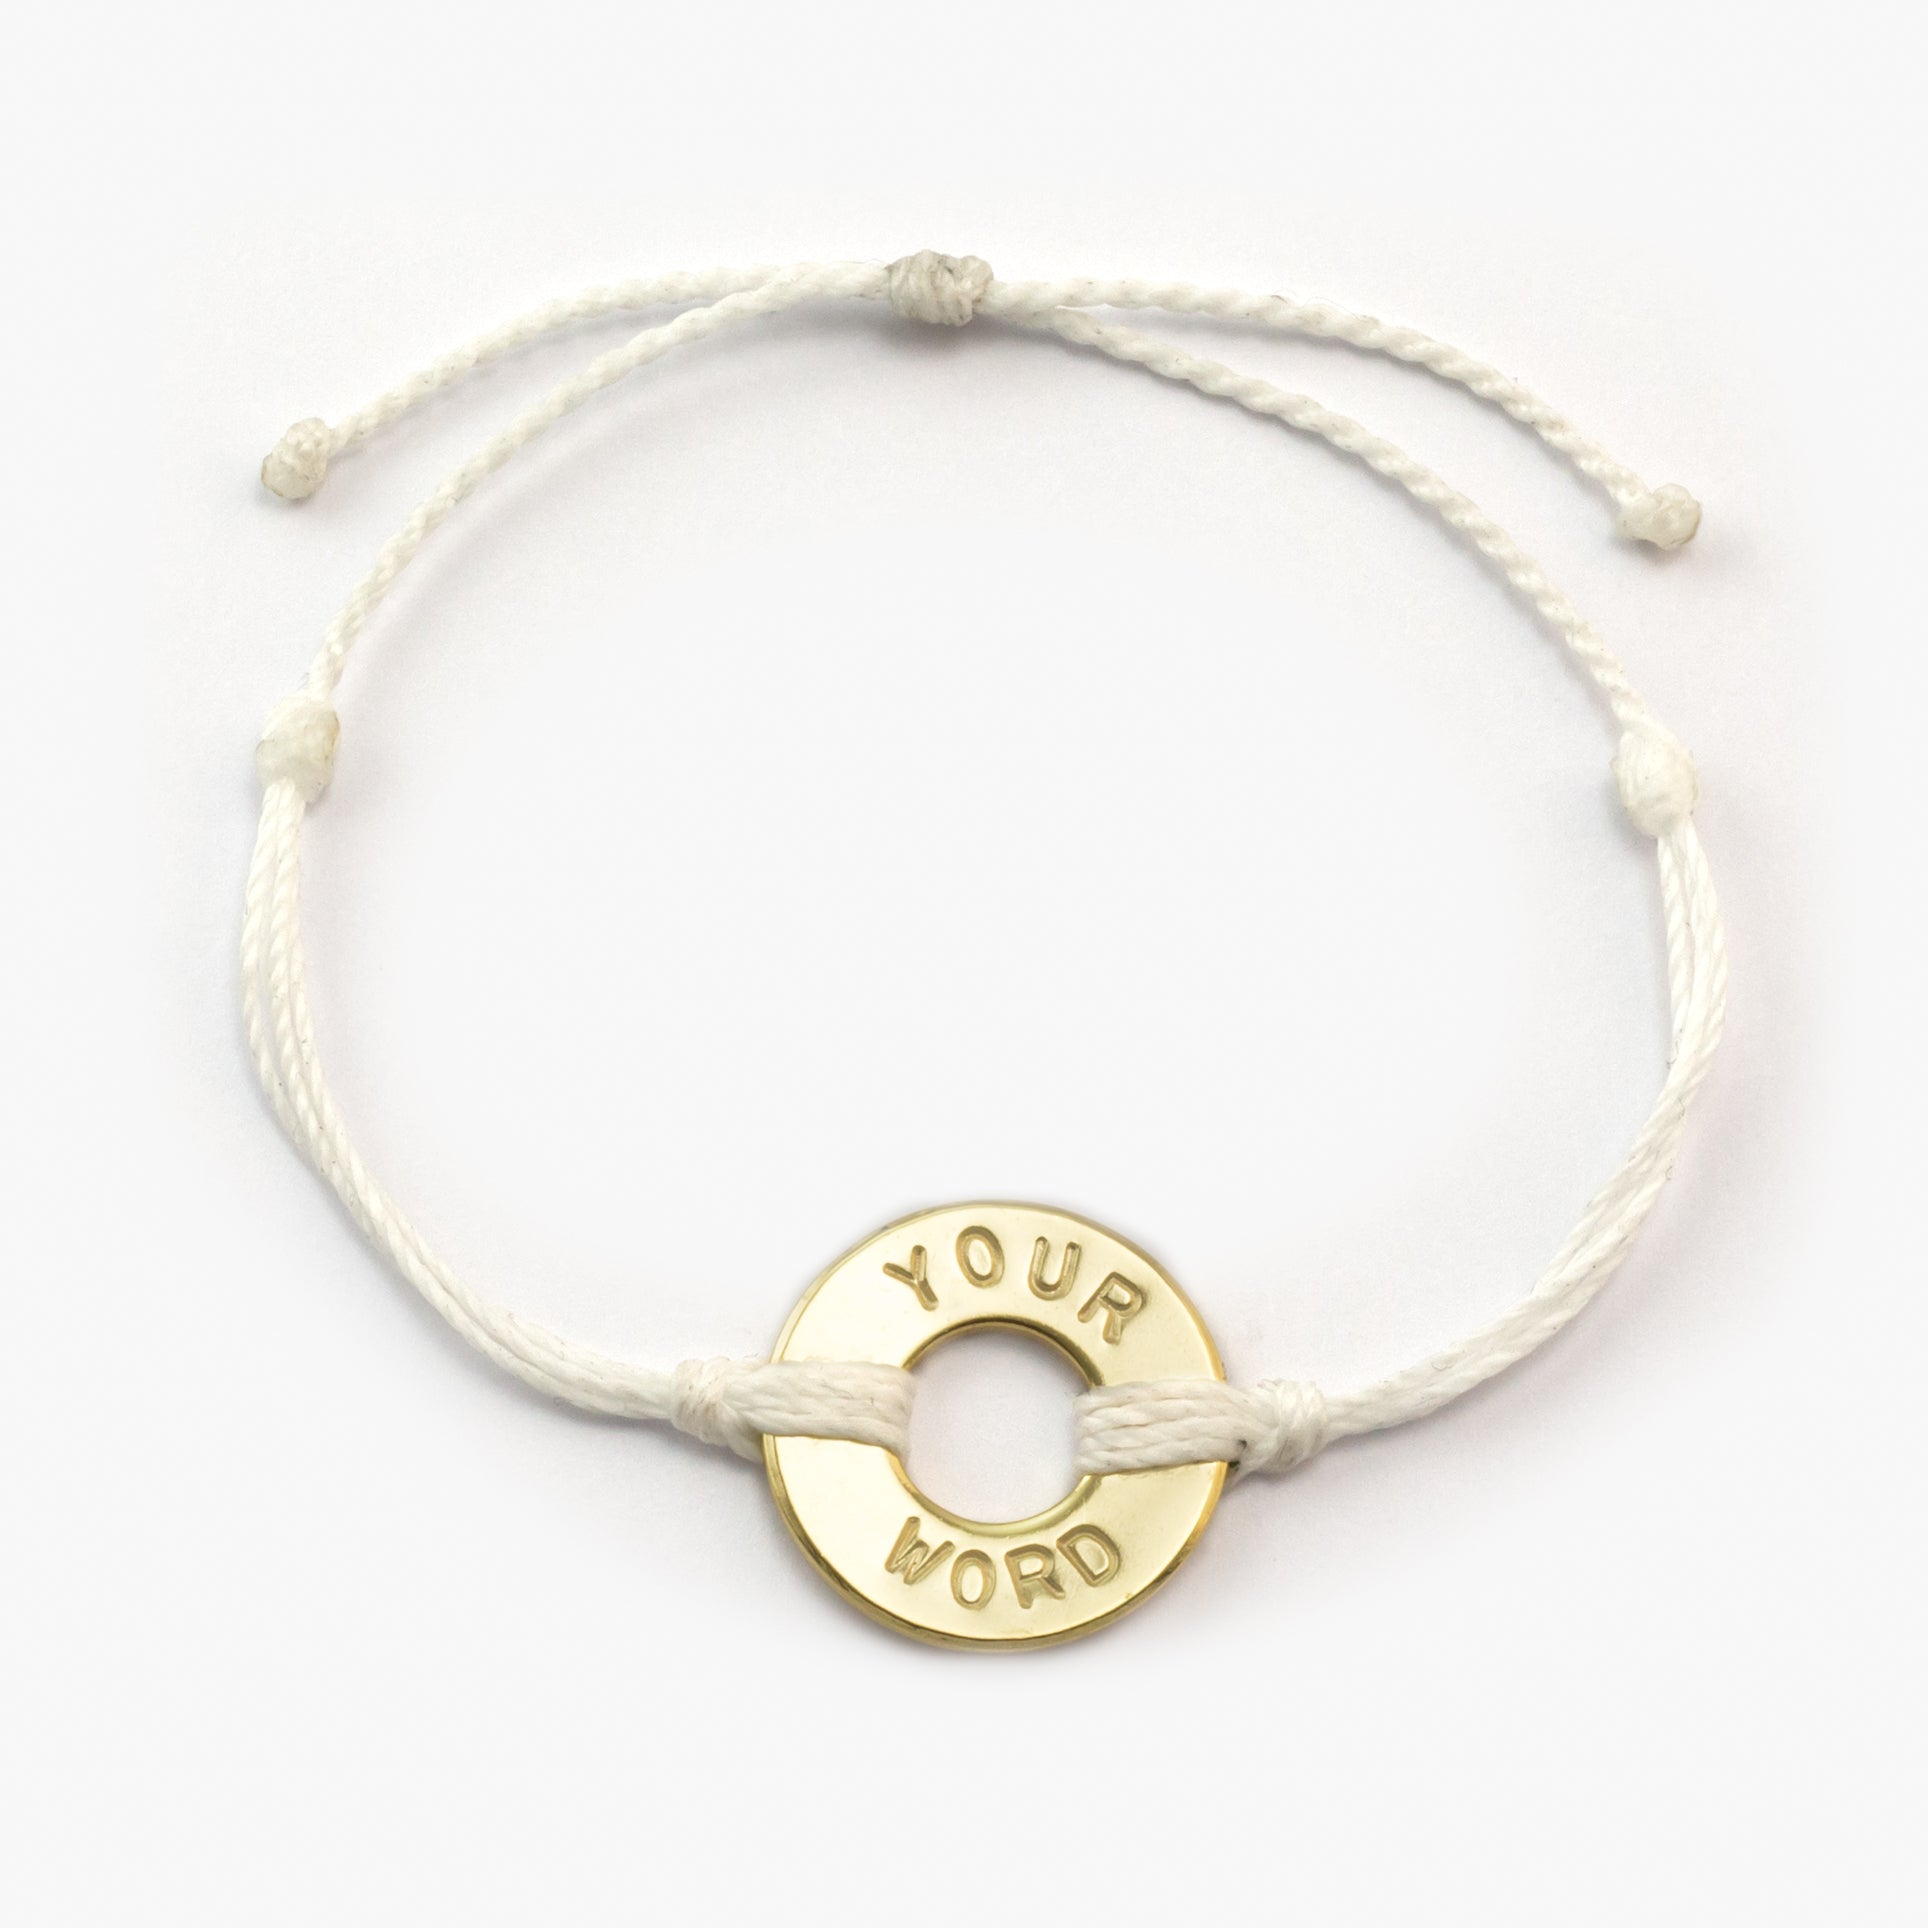 MyIntent Custom Twist Bracelet White String with Gold Token